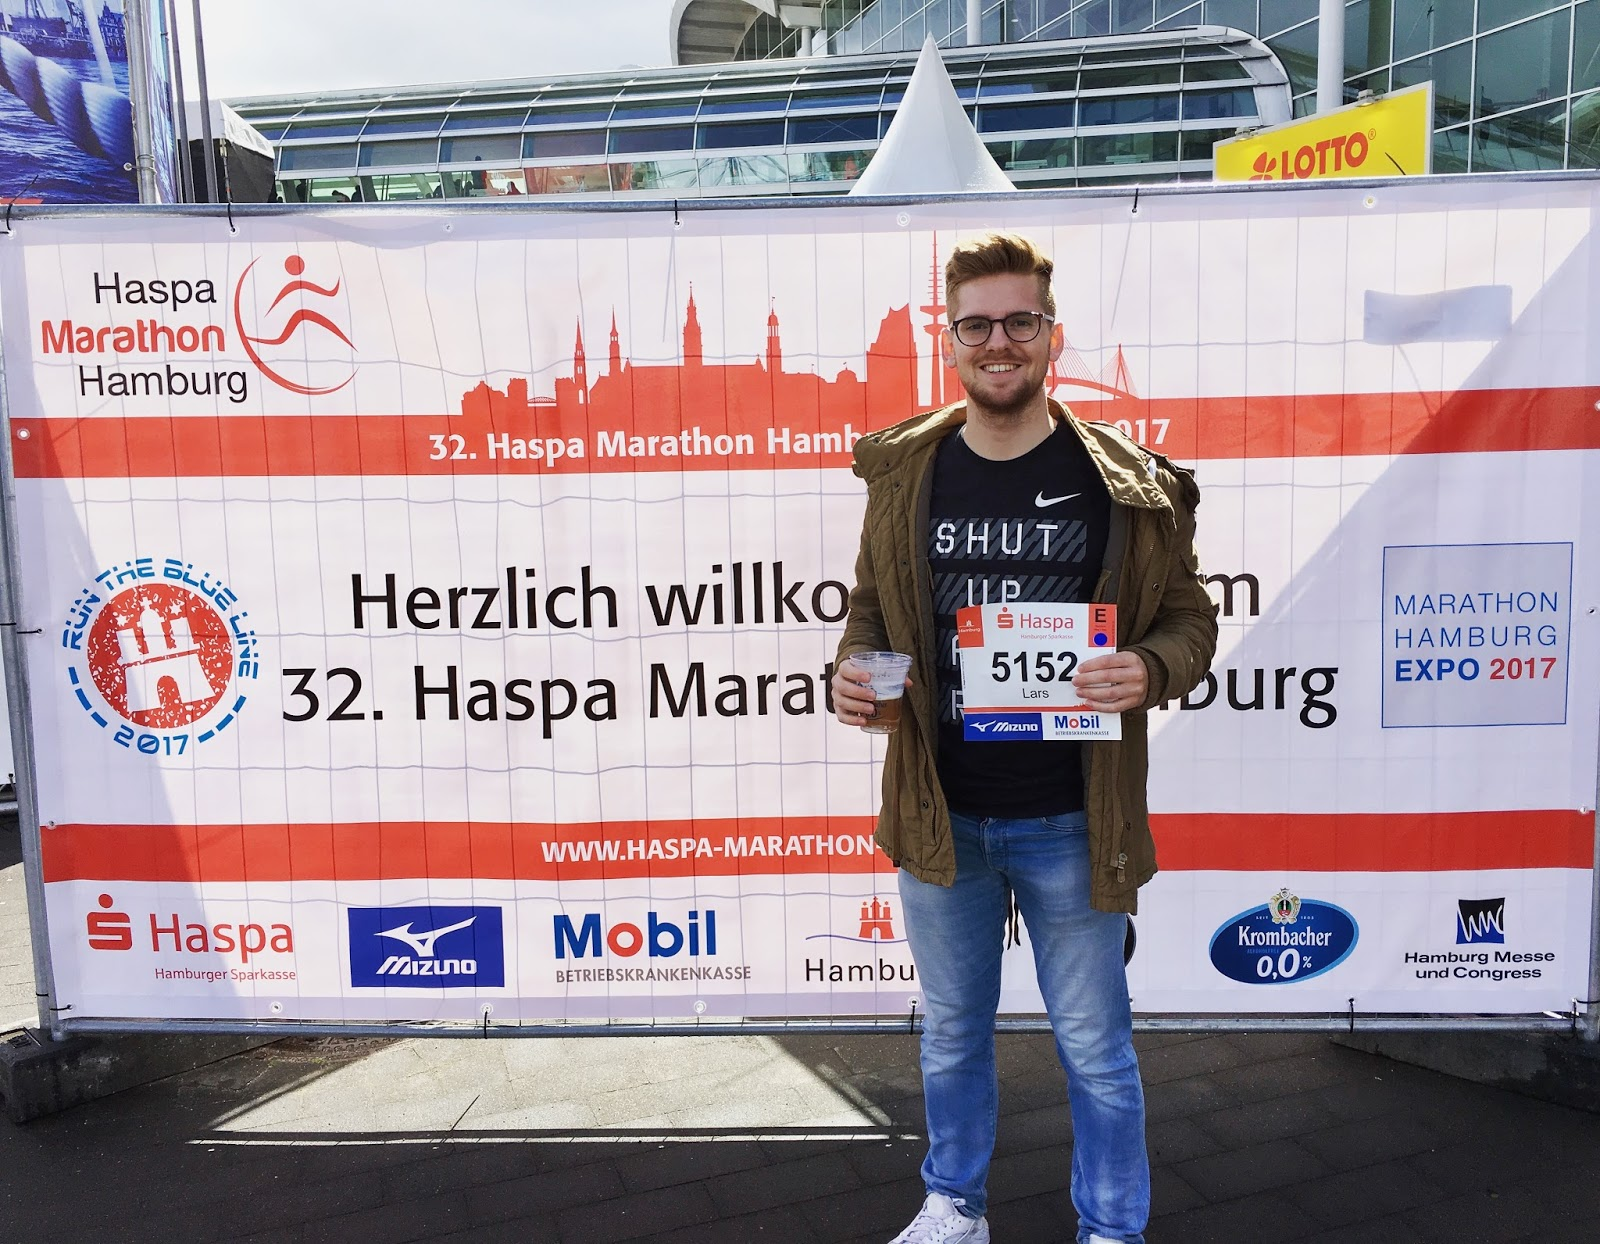 Haspa marathon Hamburg Start